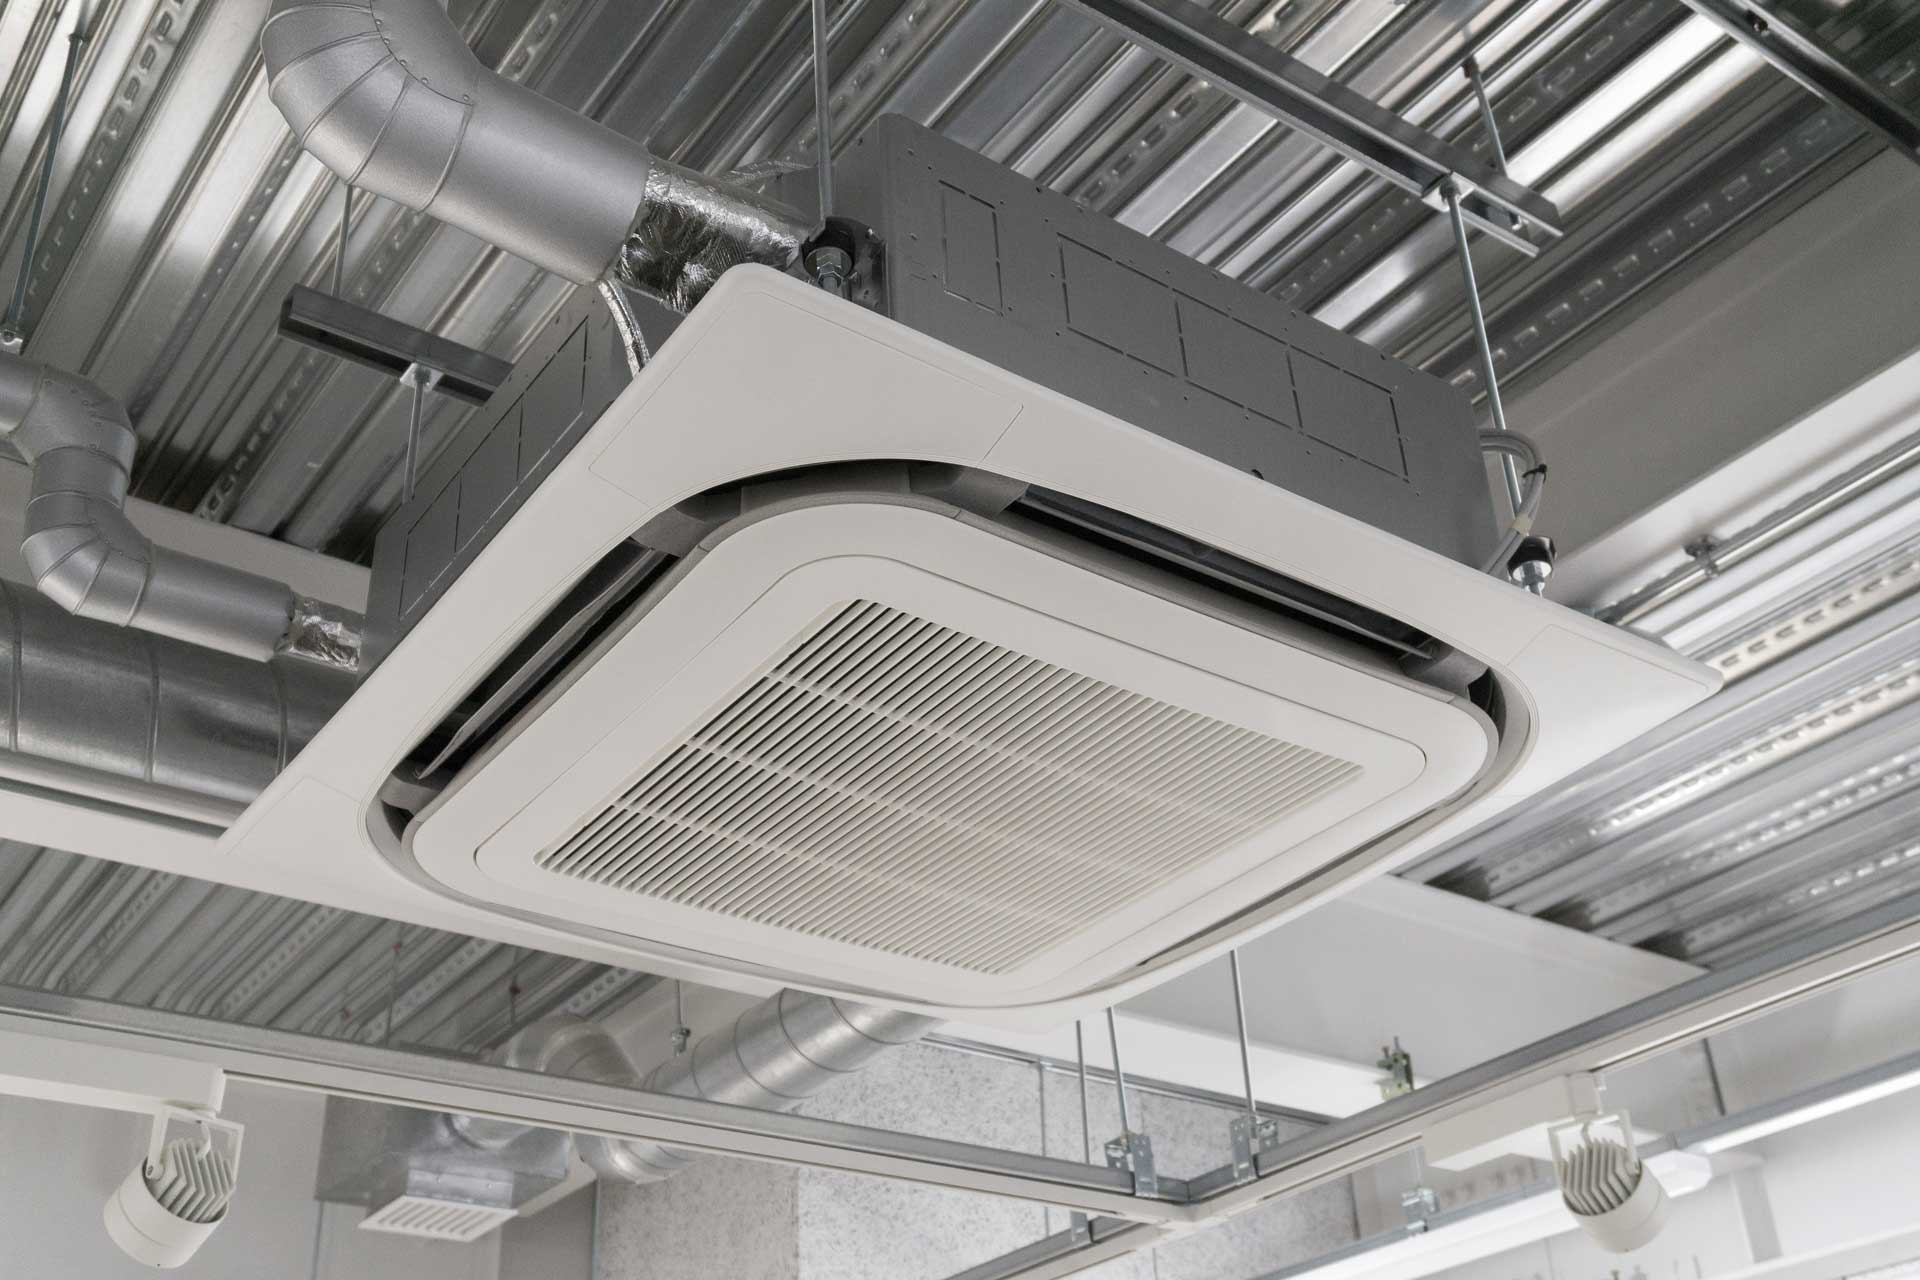 an industrial air conditioning unit ceiling mounted